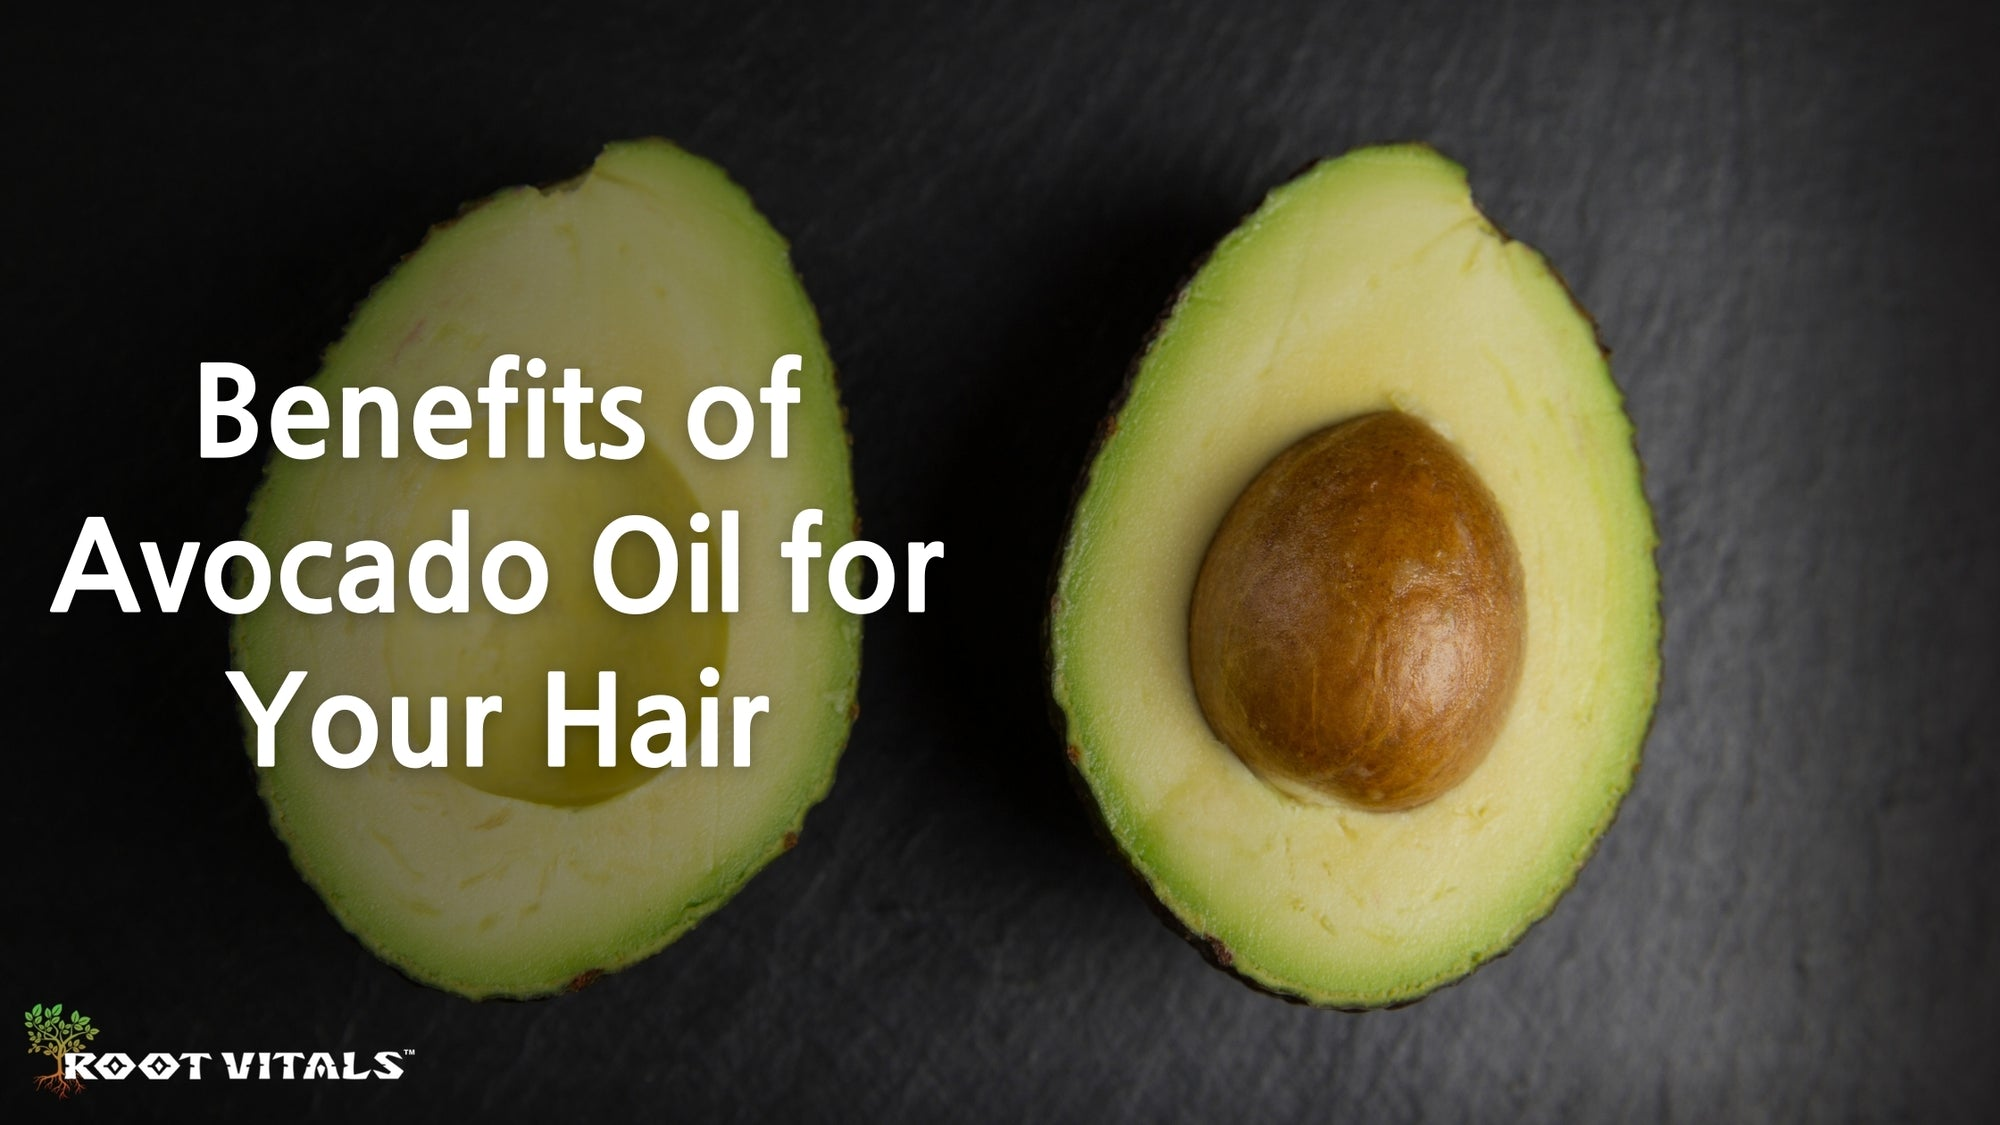 The Important Benefits of Avocado Oil for Your Hair